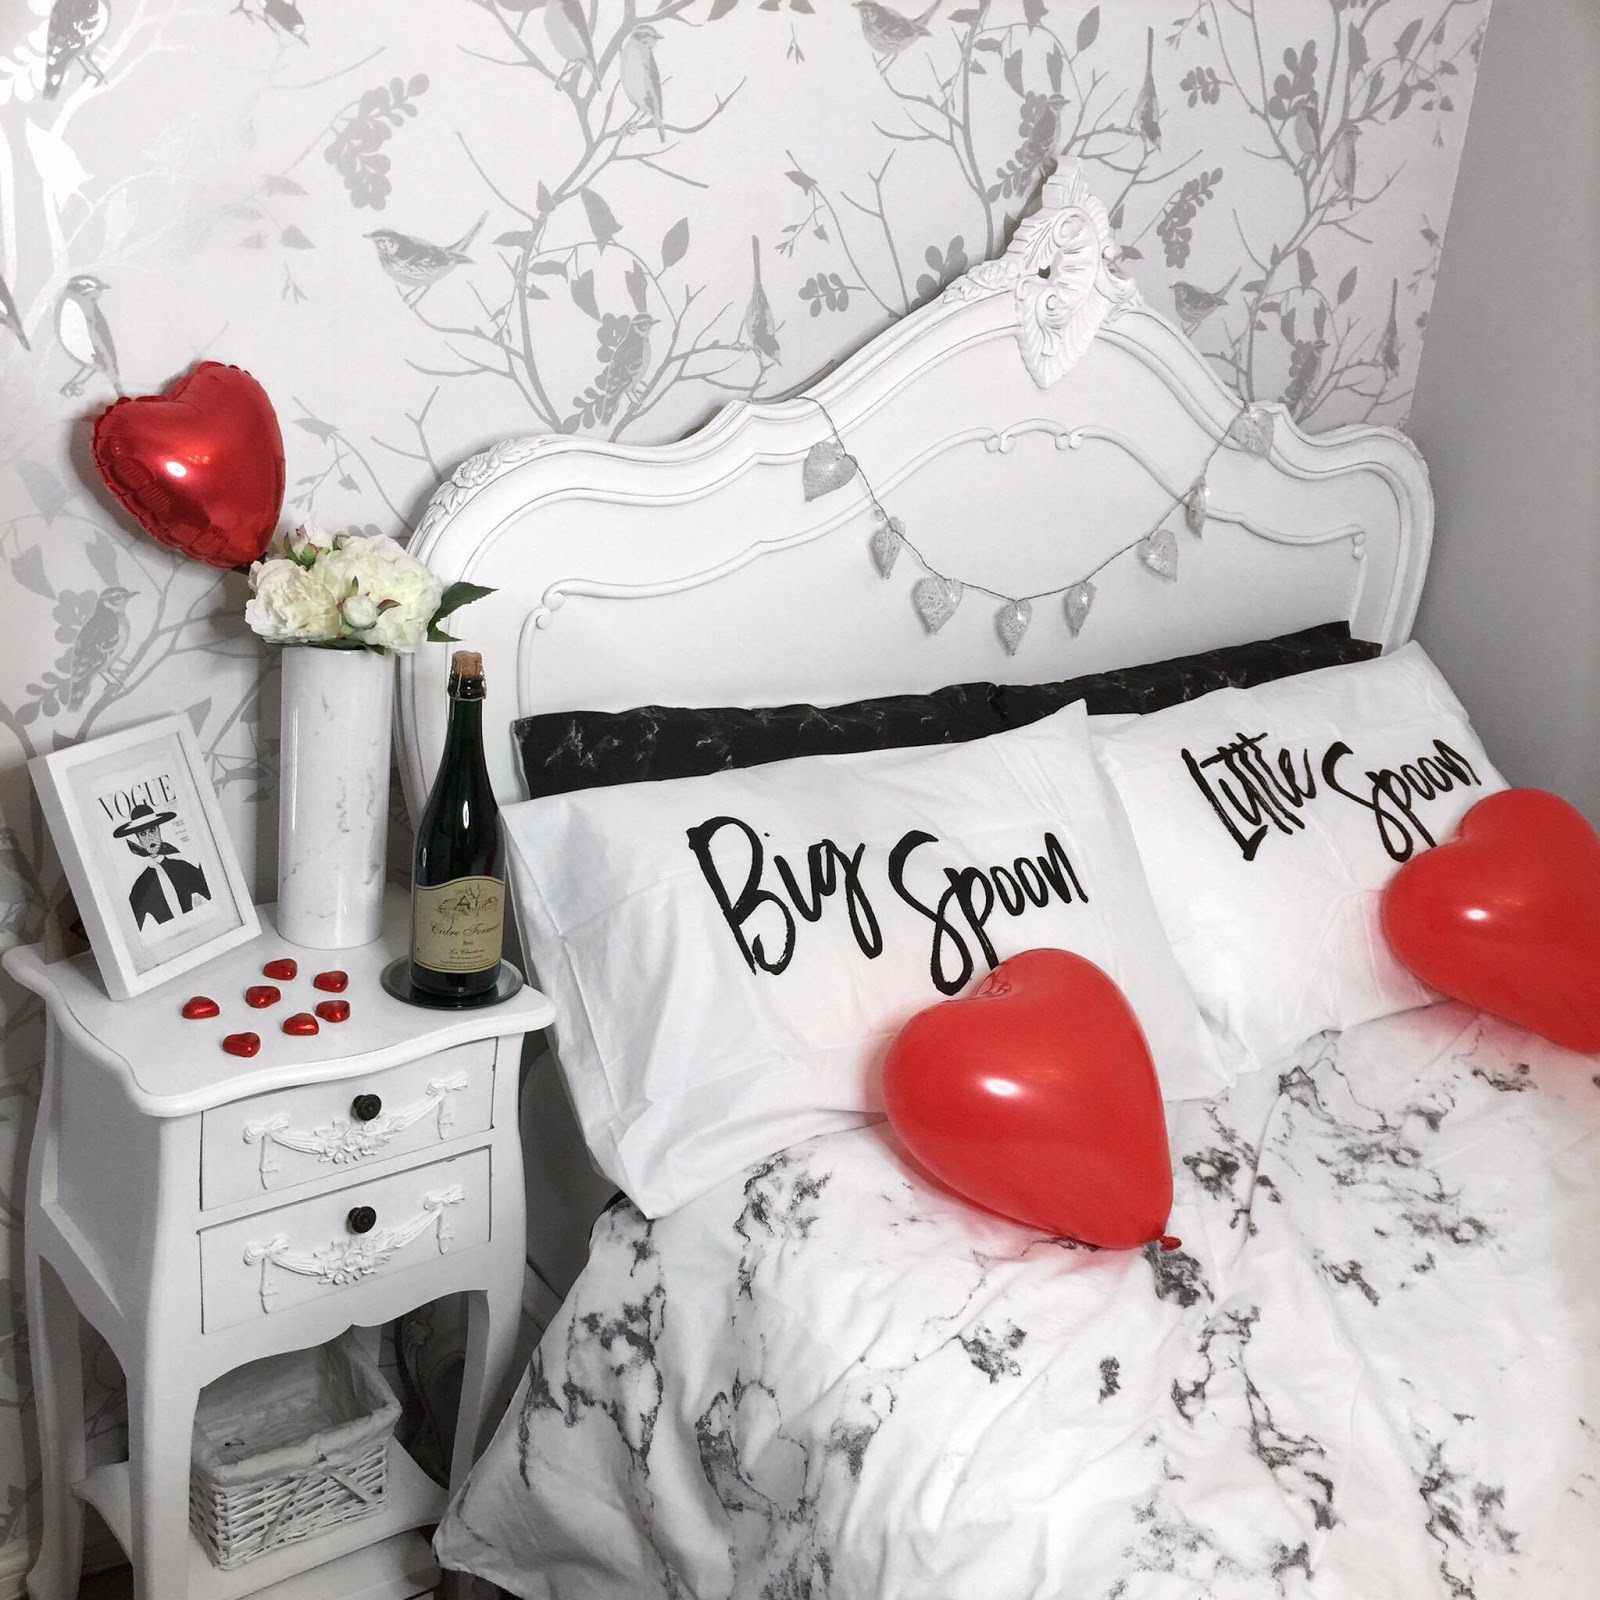 LIFESTYLE | Valentines Bedroom Tour featuring big spoon little spoon pillow cases & primark homewear.